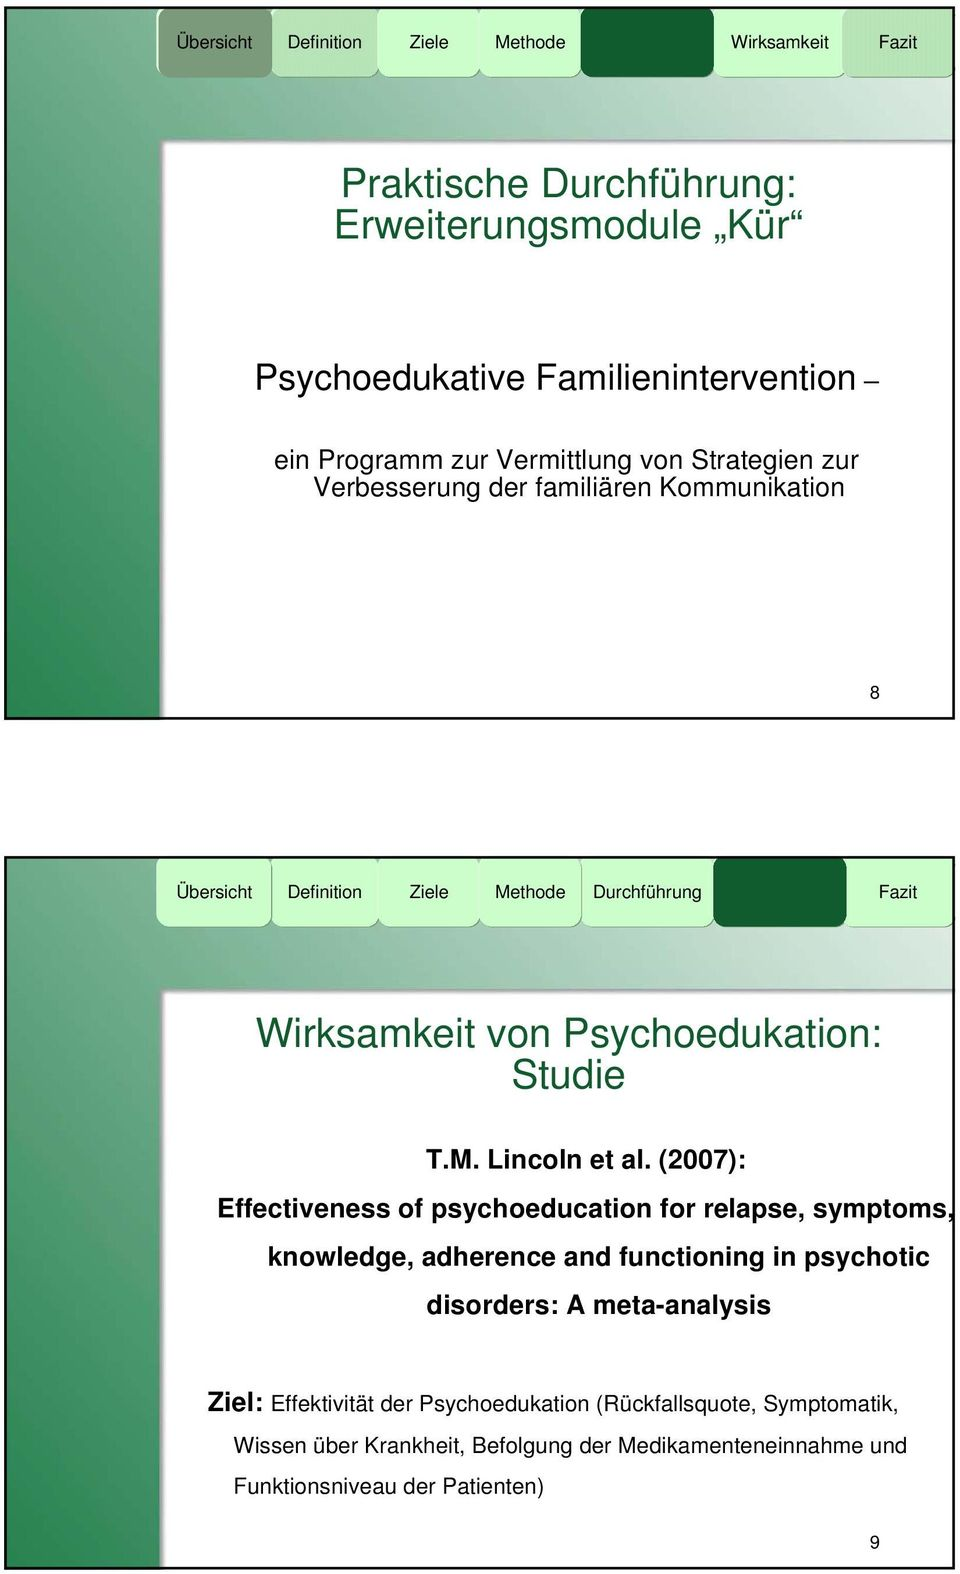 (2007): Effectiveness of psychoeducation for relapse, symptoms, knowledge, adherence and functioning in psychotic disorders: A